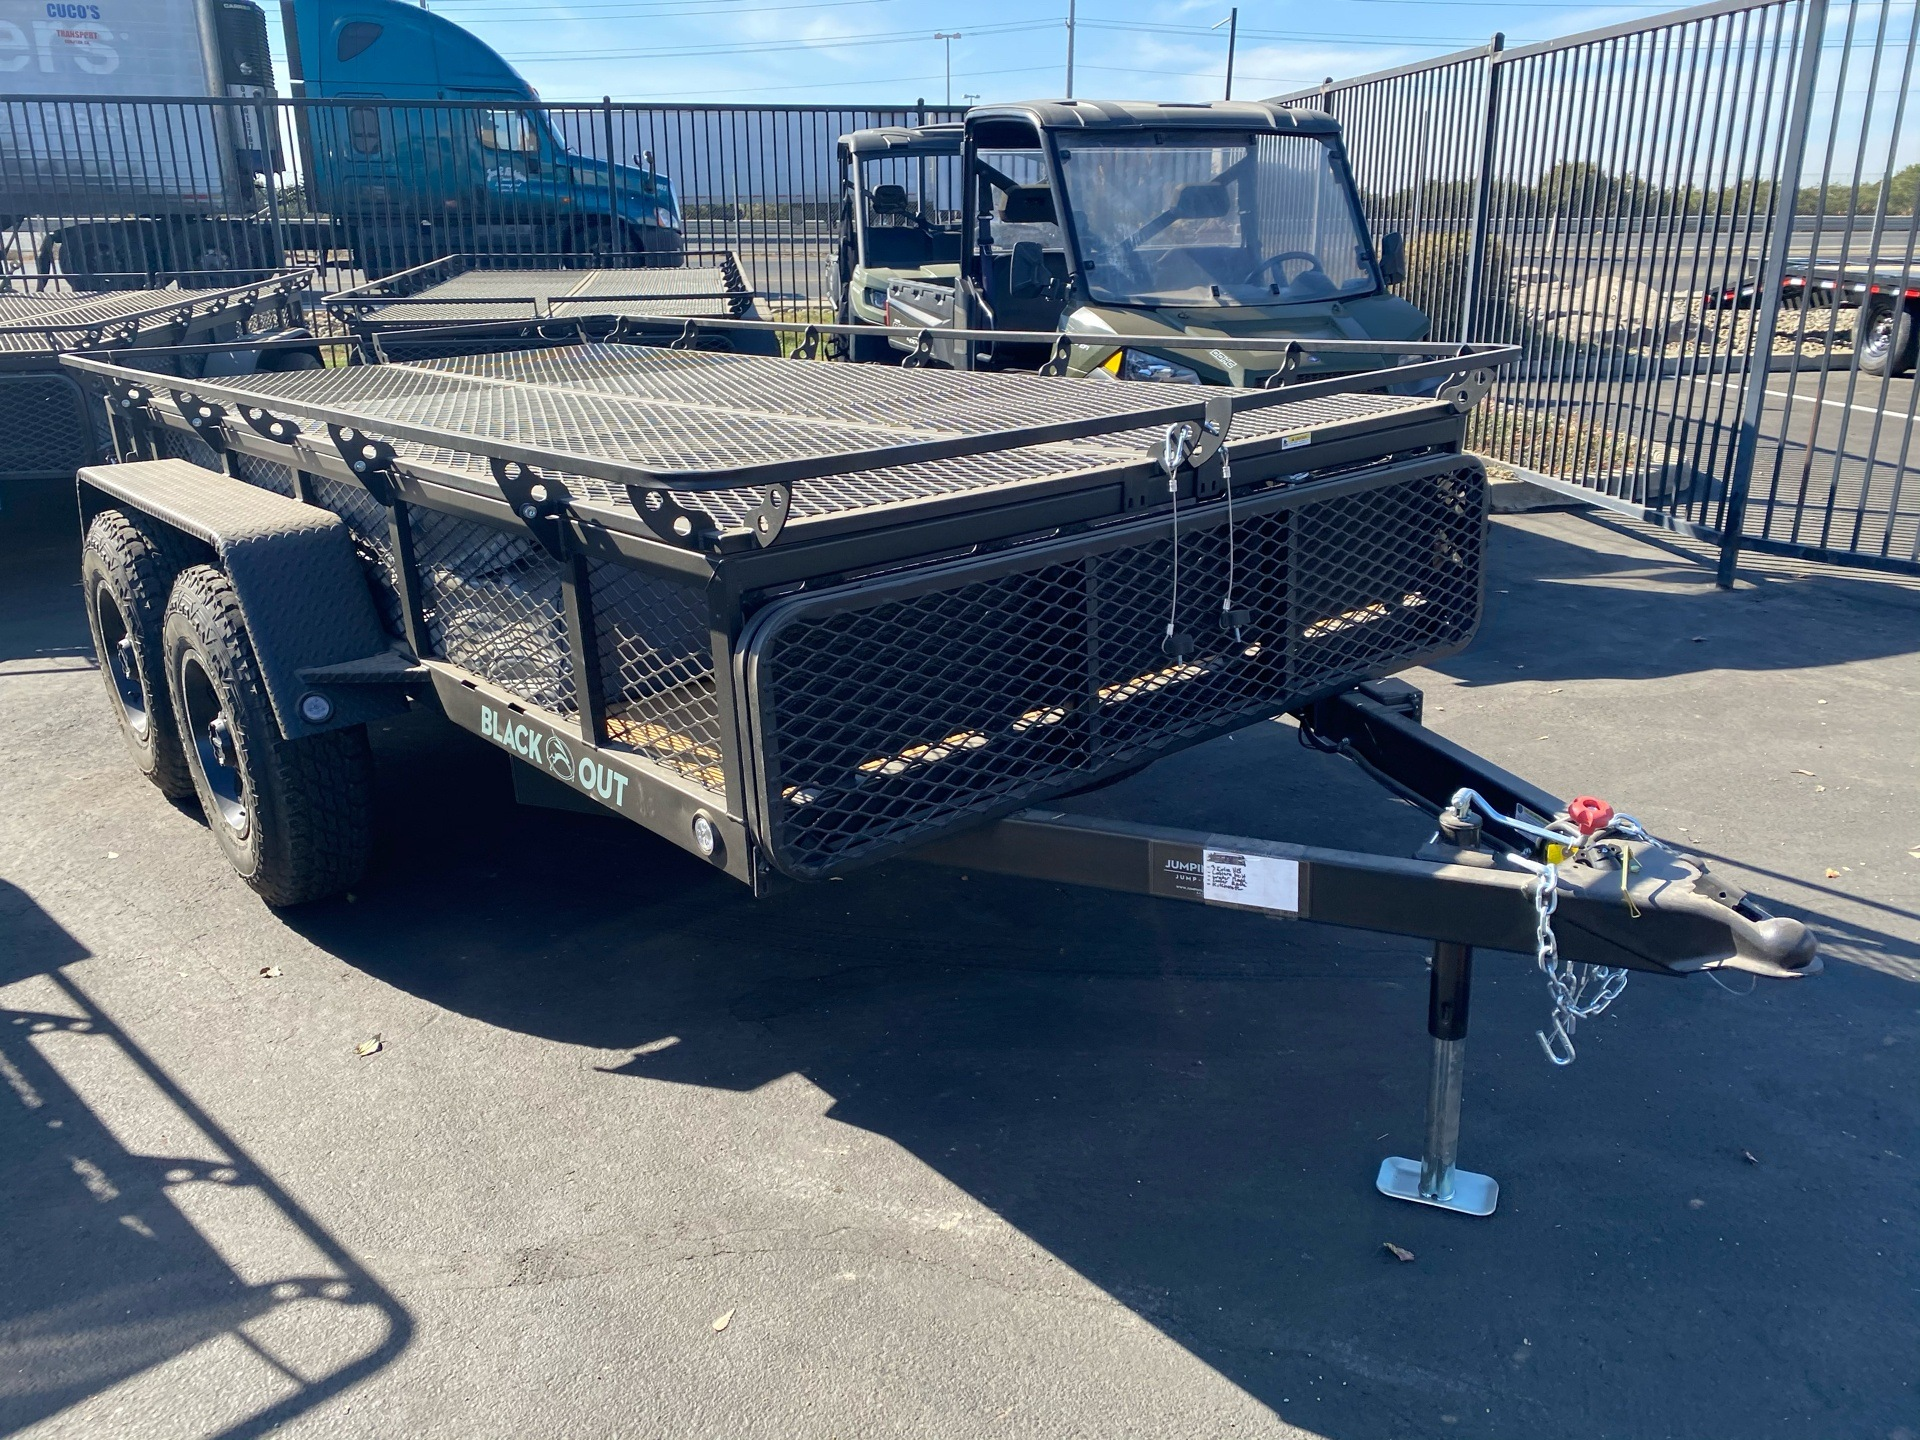 2021 Jumping Jack 6' X 12' BLACKOUT TRAILER W/ 12' TENT in Elk Grove, California - Photo 3